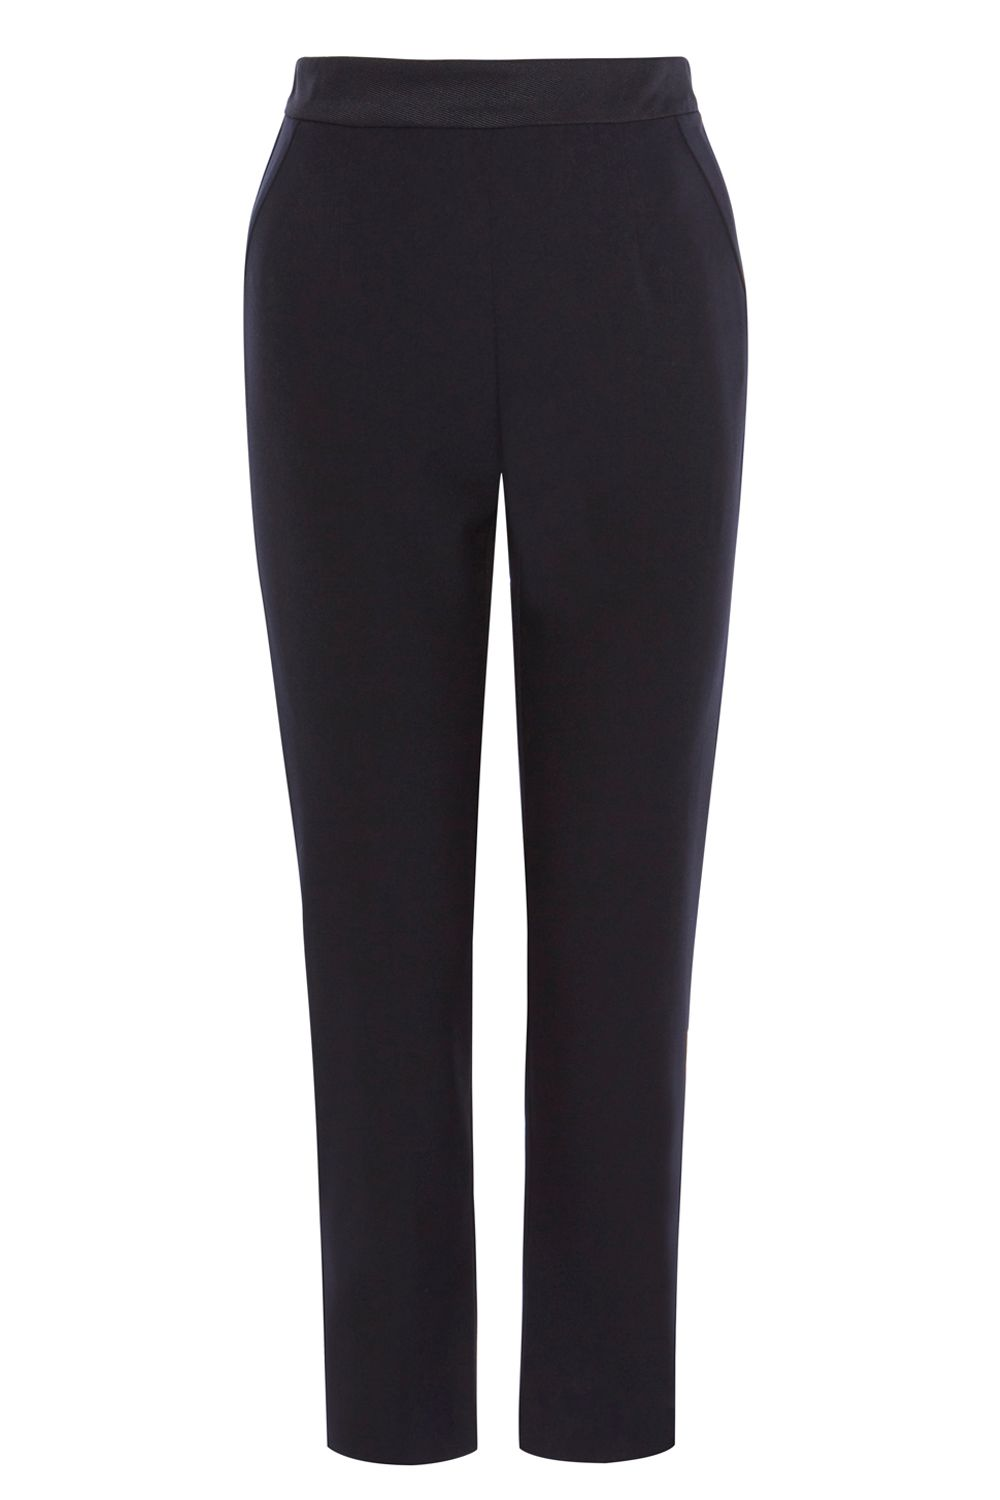 Coast Coast Lucia Slim Leg Trousers, Black